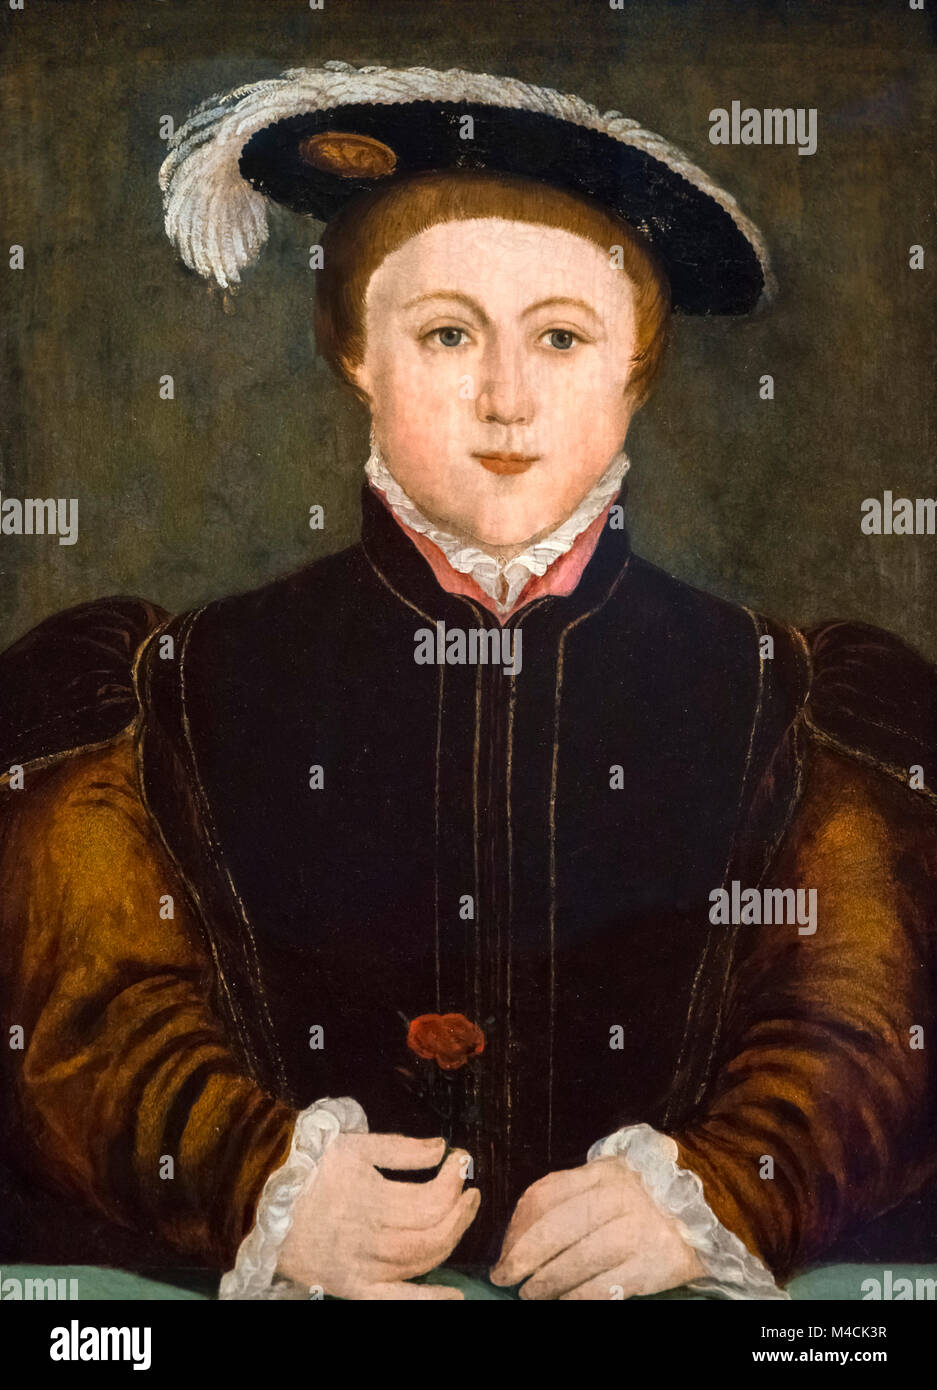 Edward VI. Portrait of King Edward VI of England (1537-1553), oil on panel, after Hans Holbein, 16th century. - Stock Image